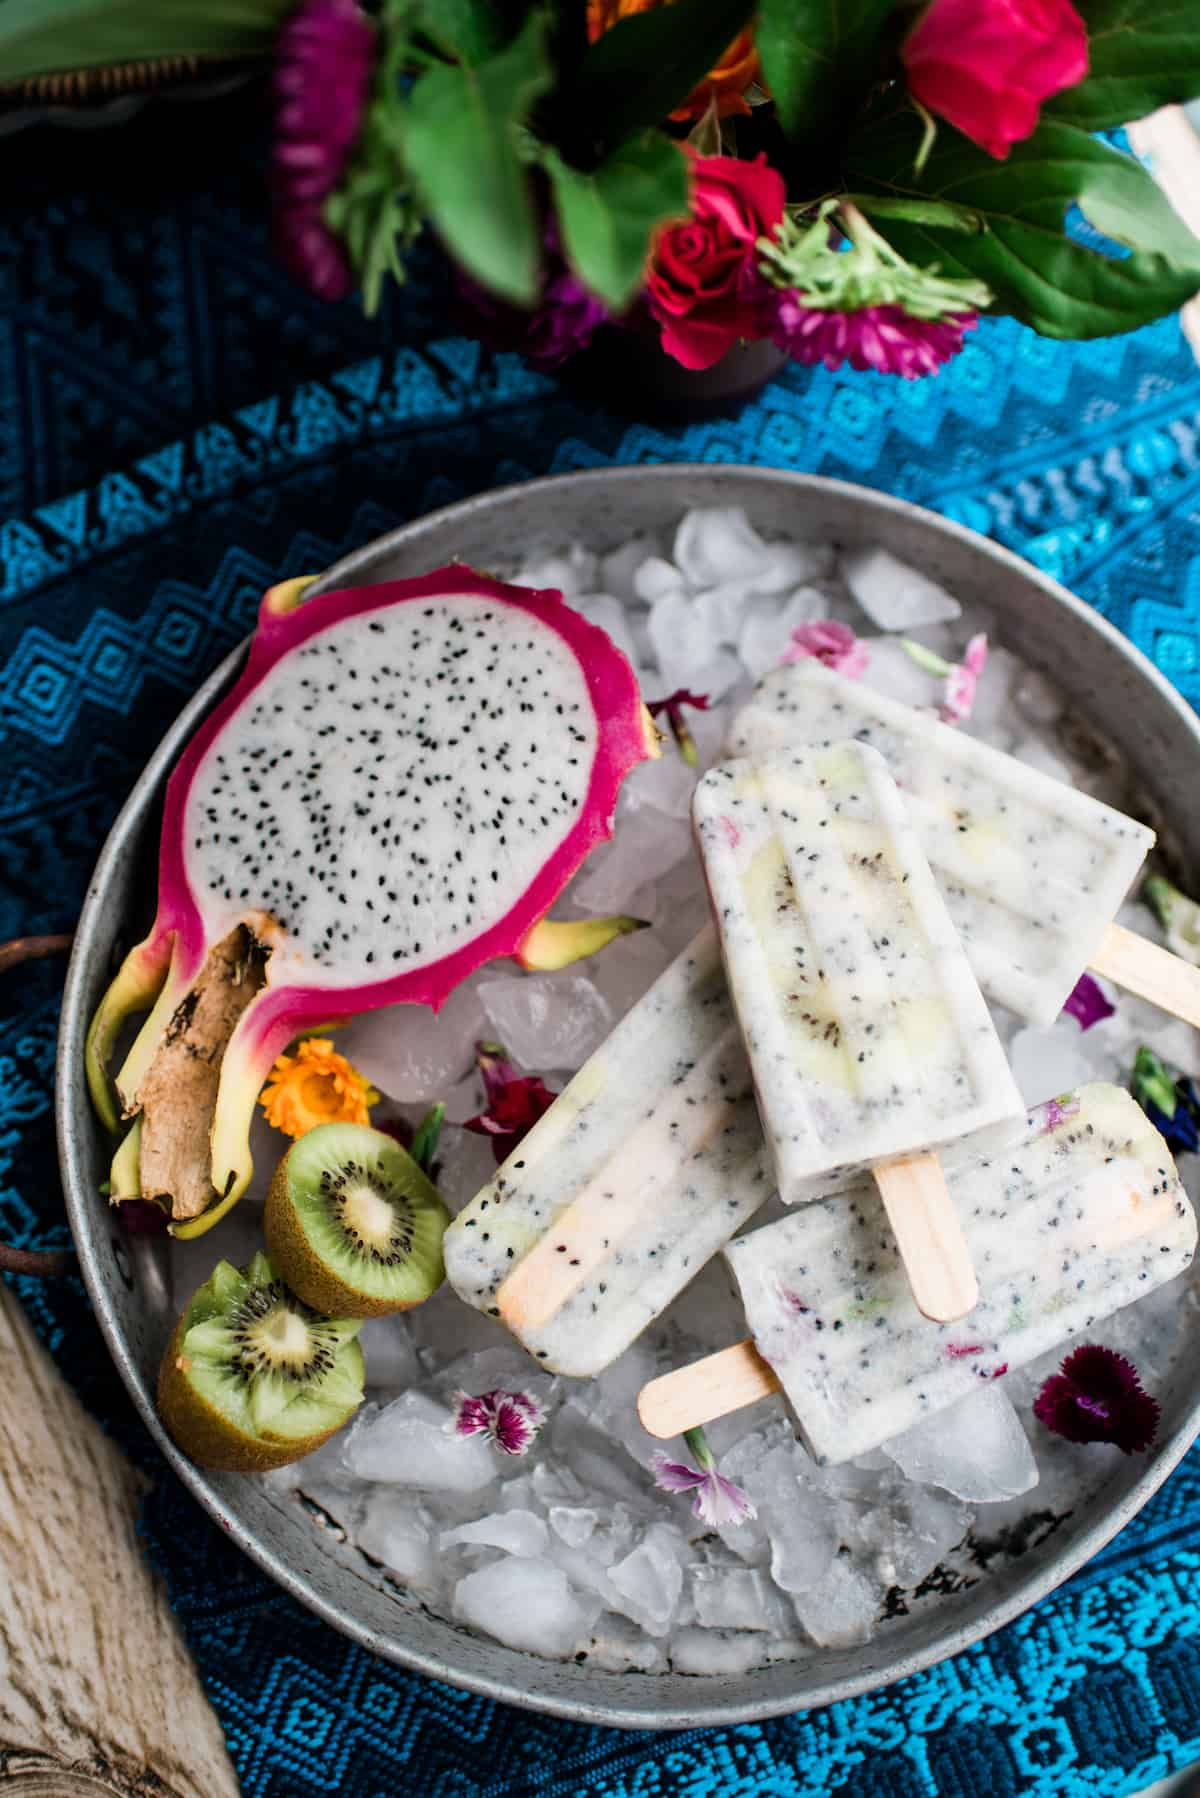 kiwi and dragron fruit paletas on ice in a silver metal tray with a blue runner underneath and flowers in the background